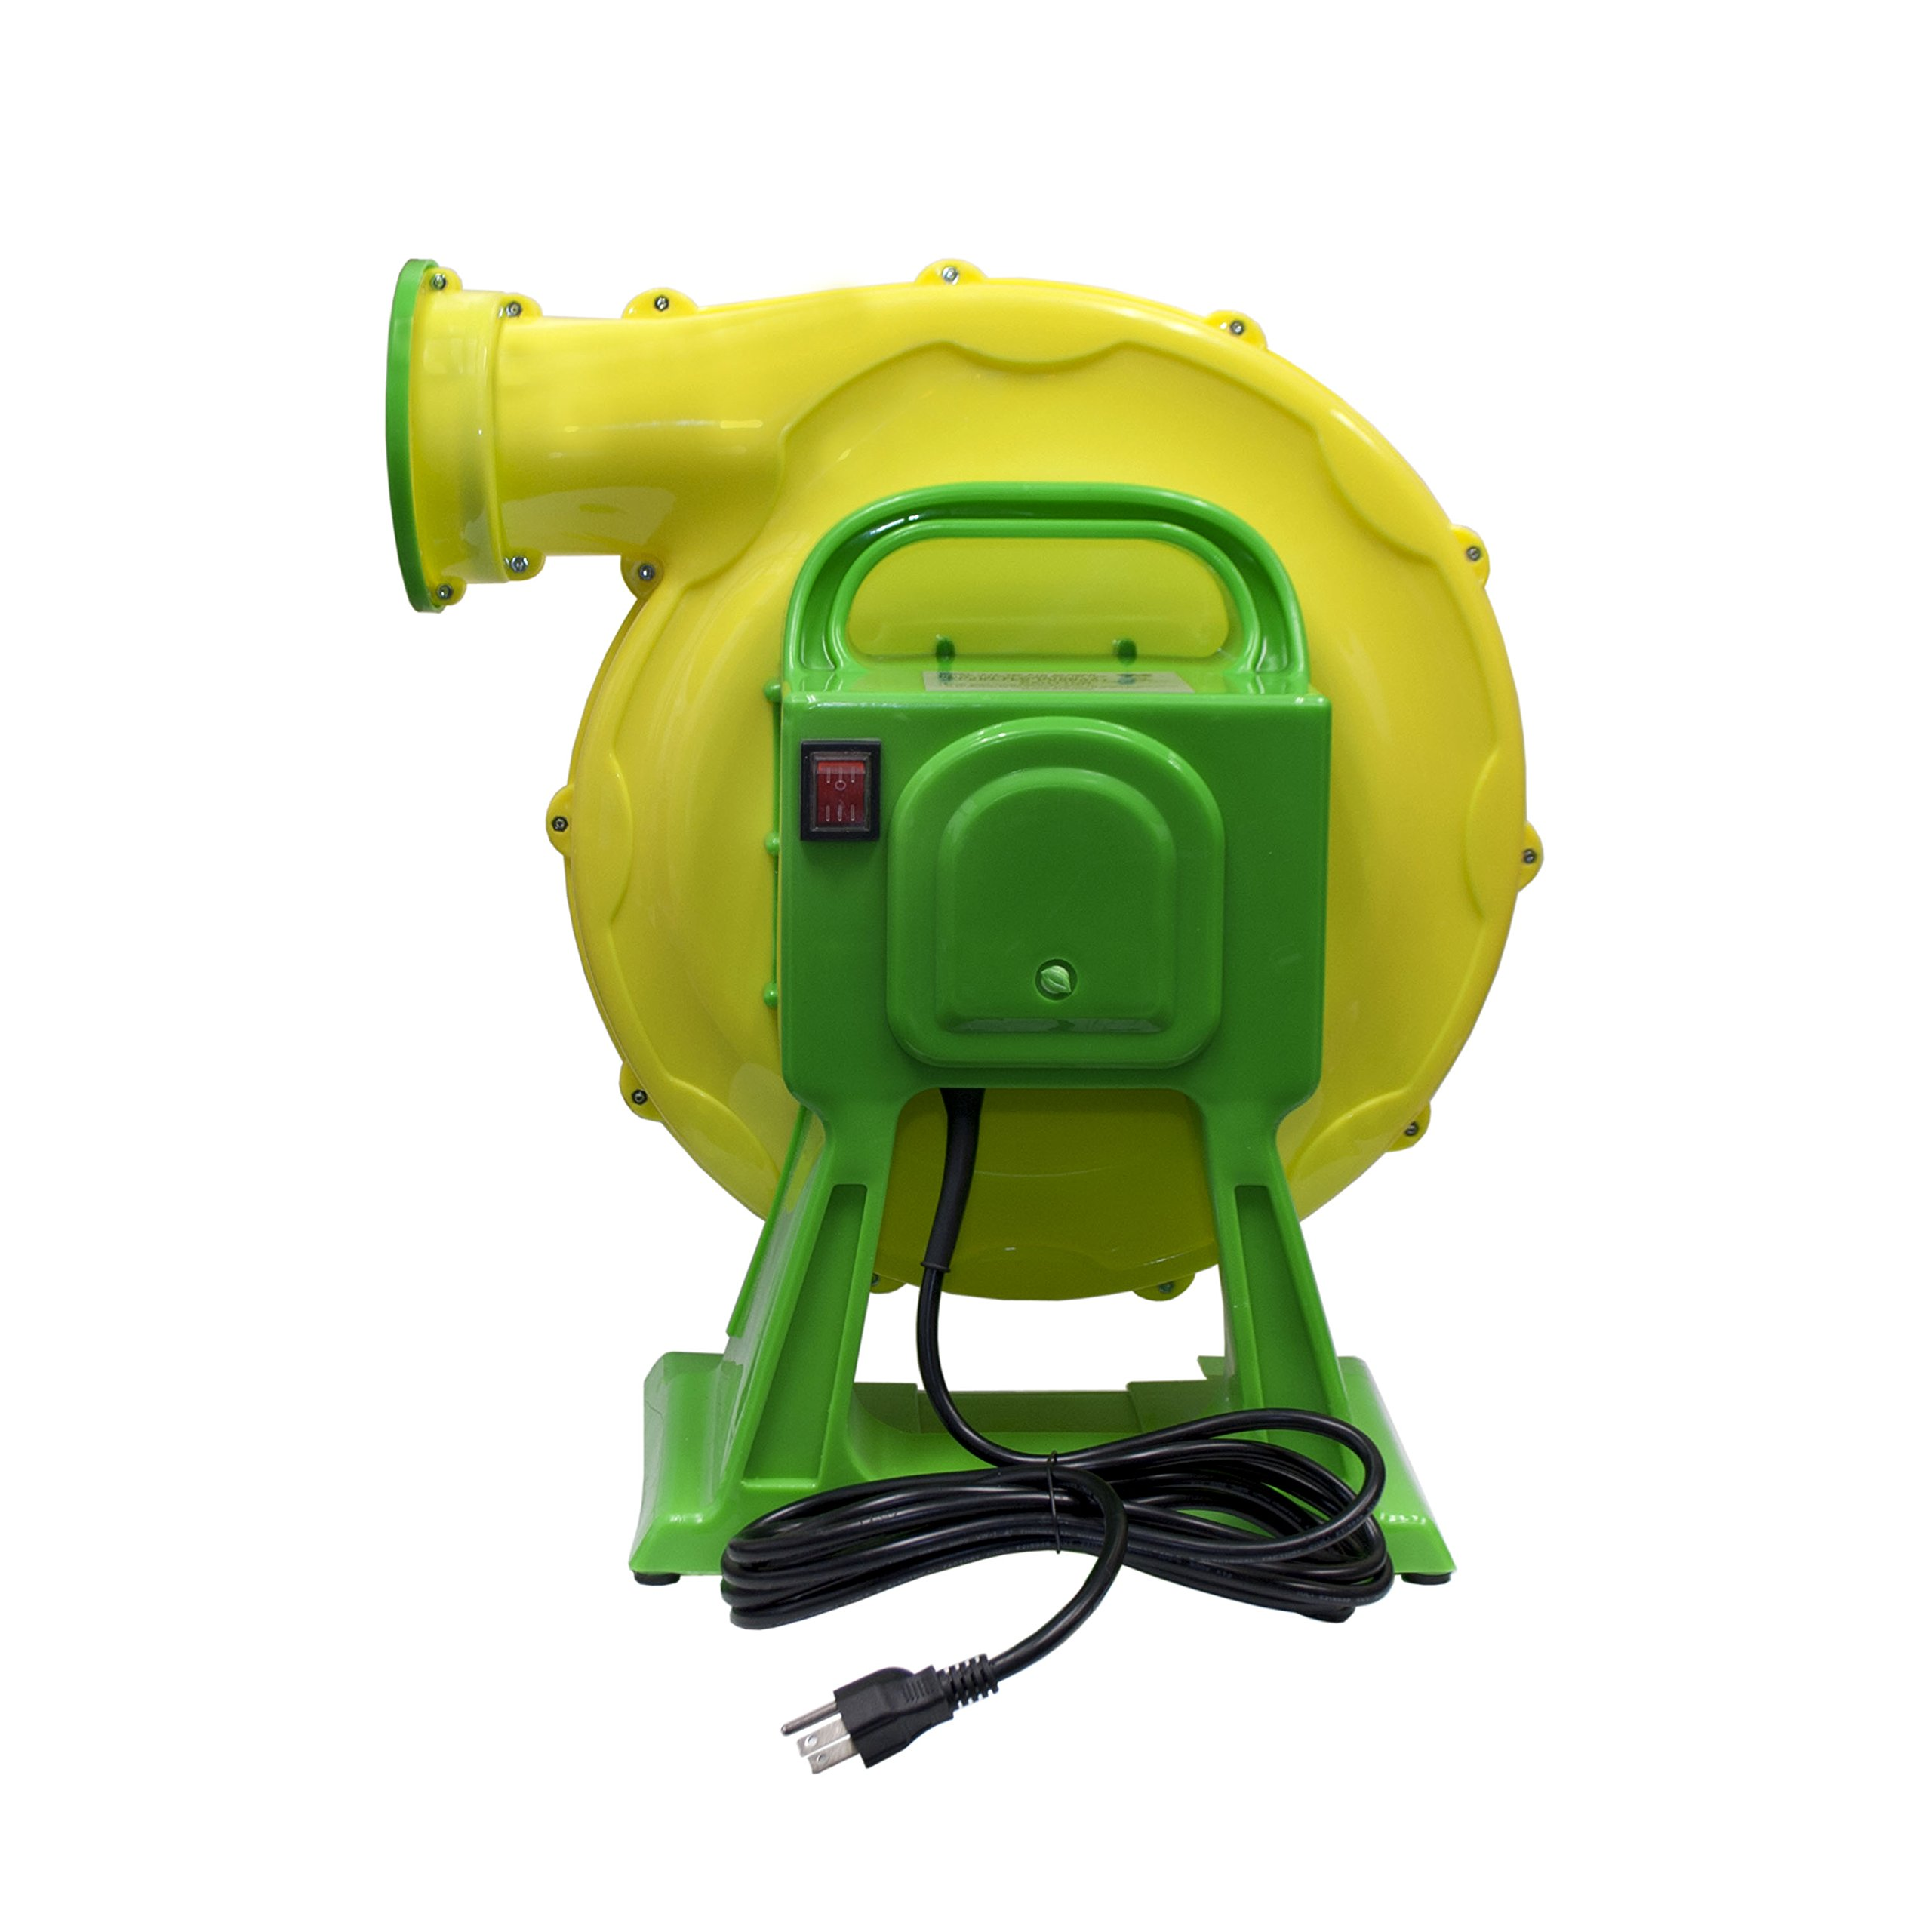 ALEKO BHPUMP1500W Bouncy House UL Approved Air Blower Pump Fan 1.5 HP 1500W For Inflatable Bounce House